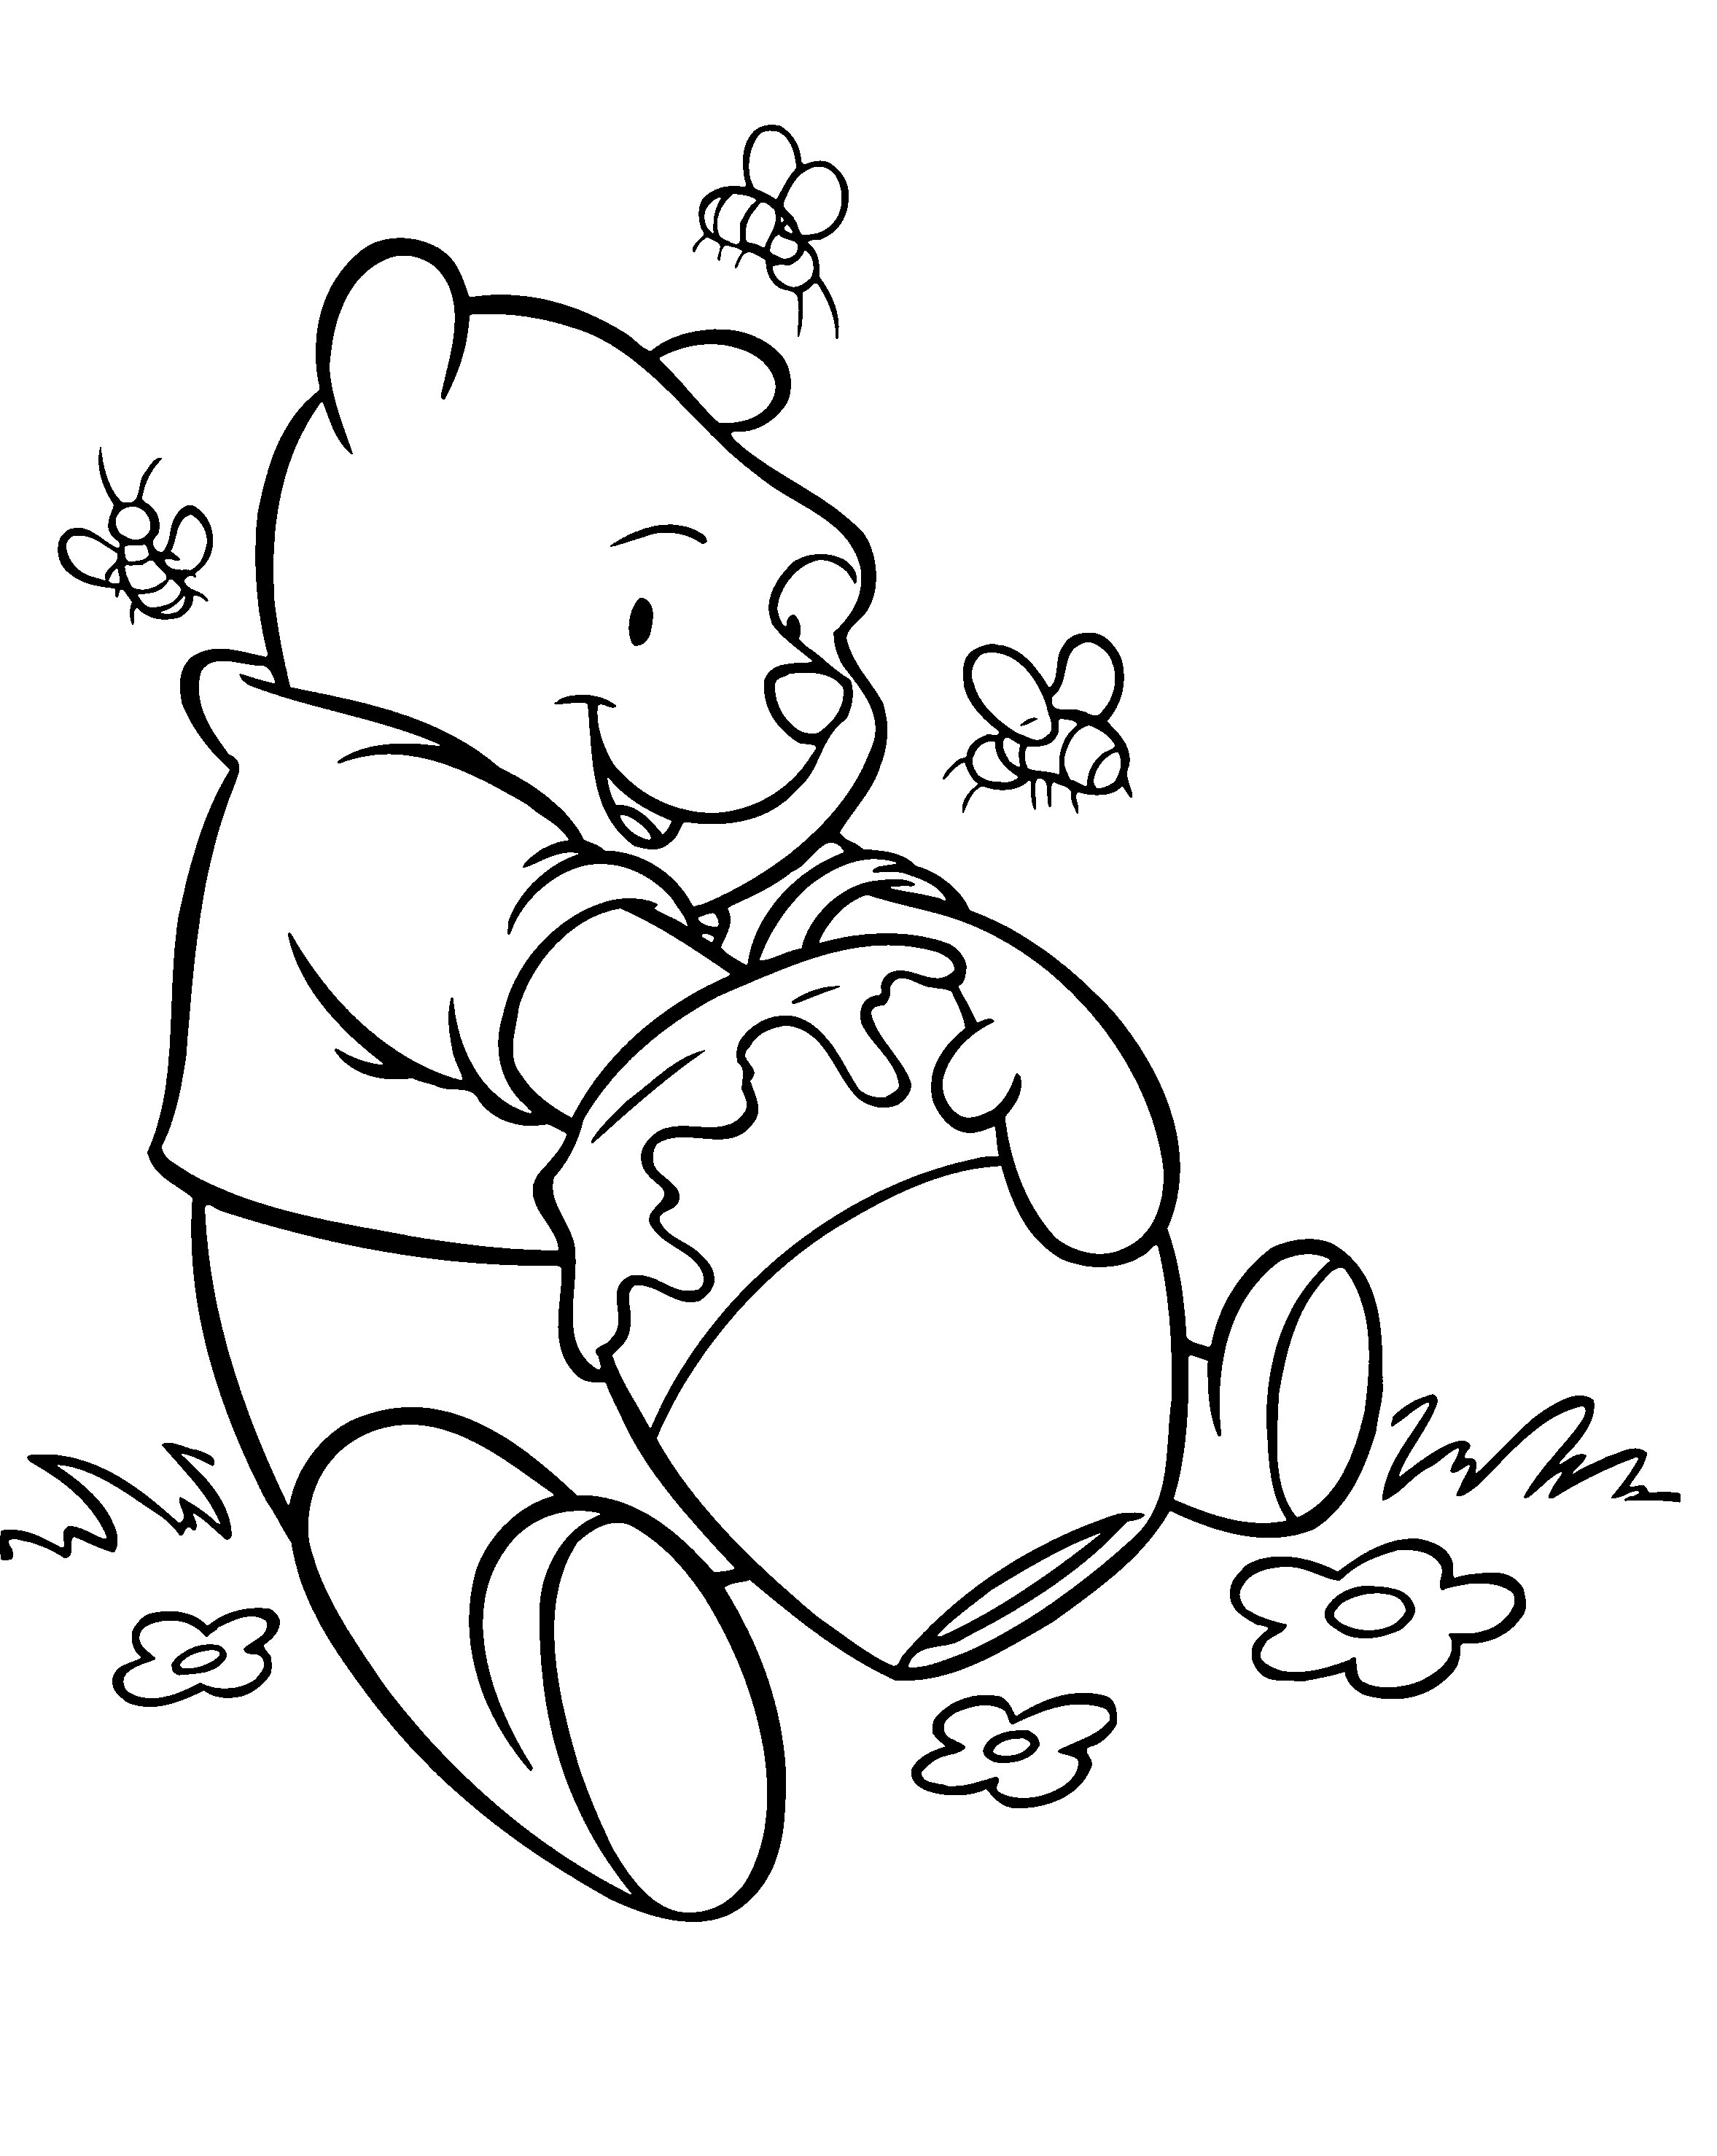 winnie the pooh drawing how to draw winnie the pooh step by step pictures the winnie drawing pooh